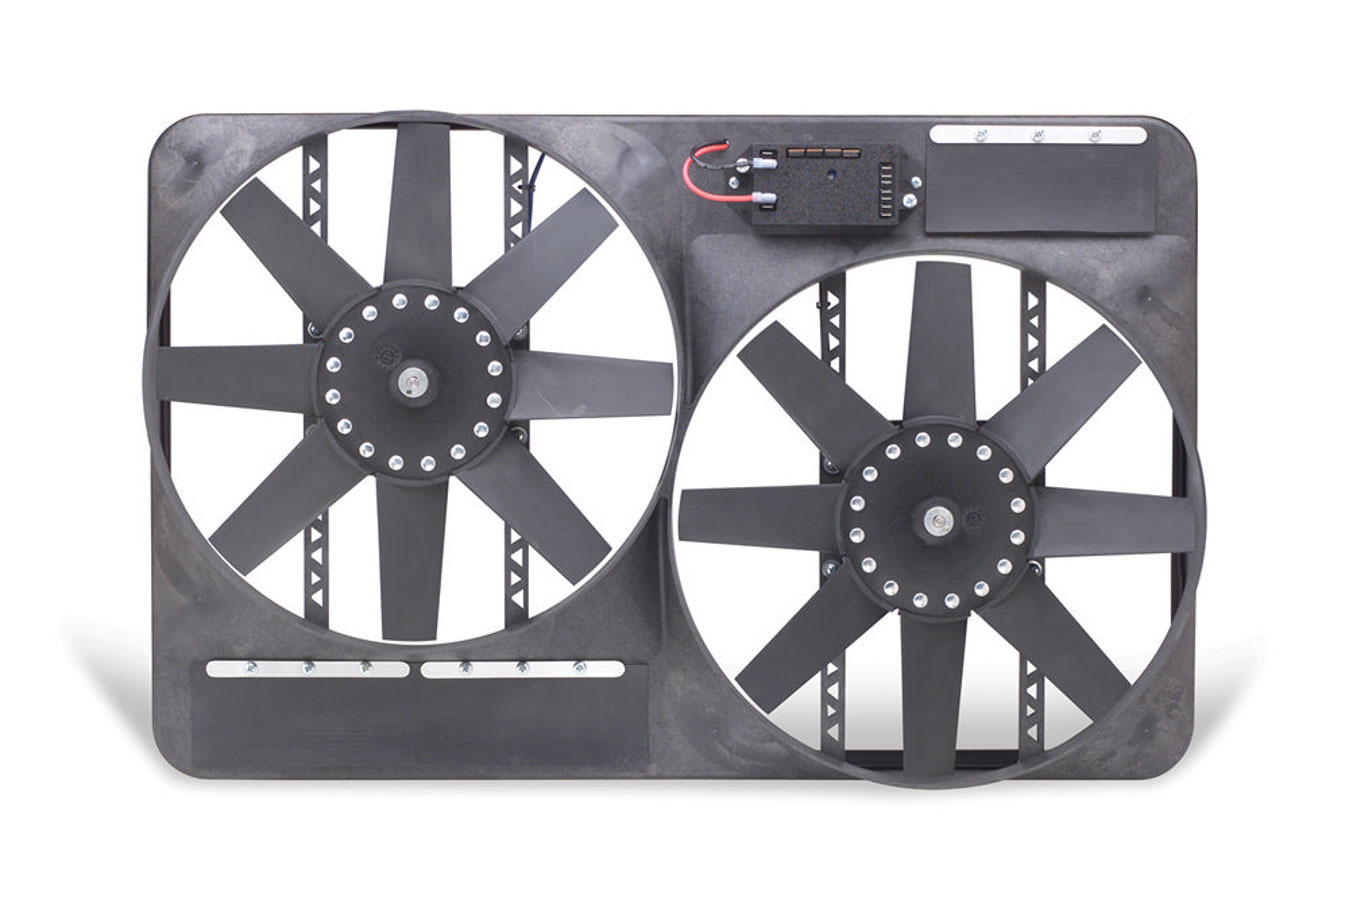 Universal Dual 13.5in Fans